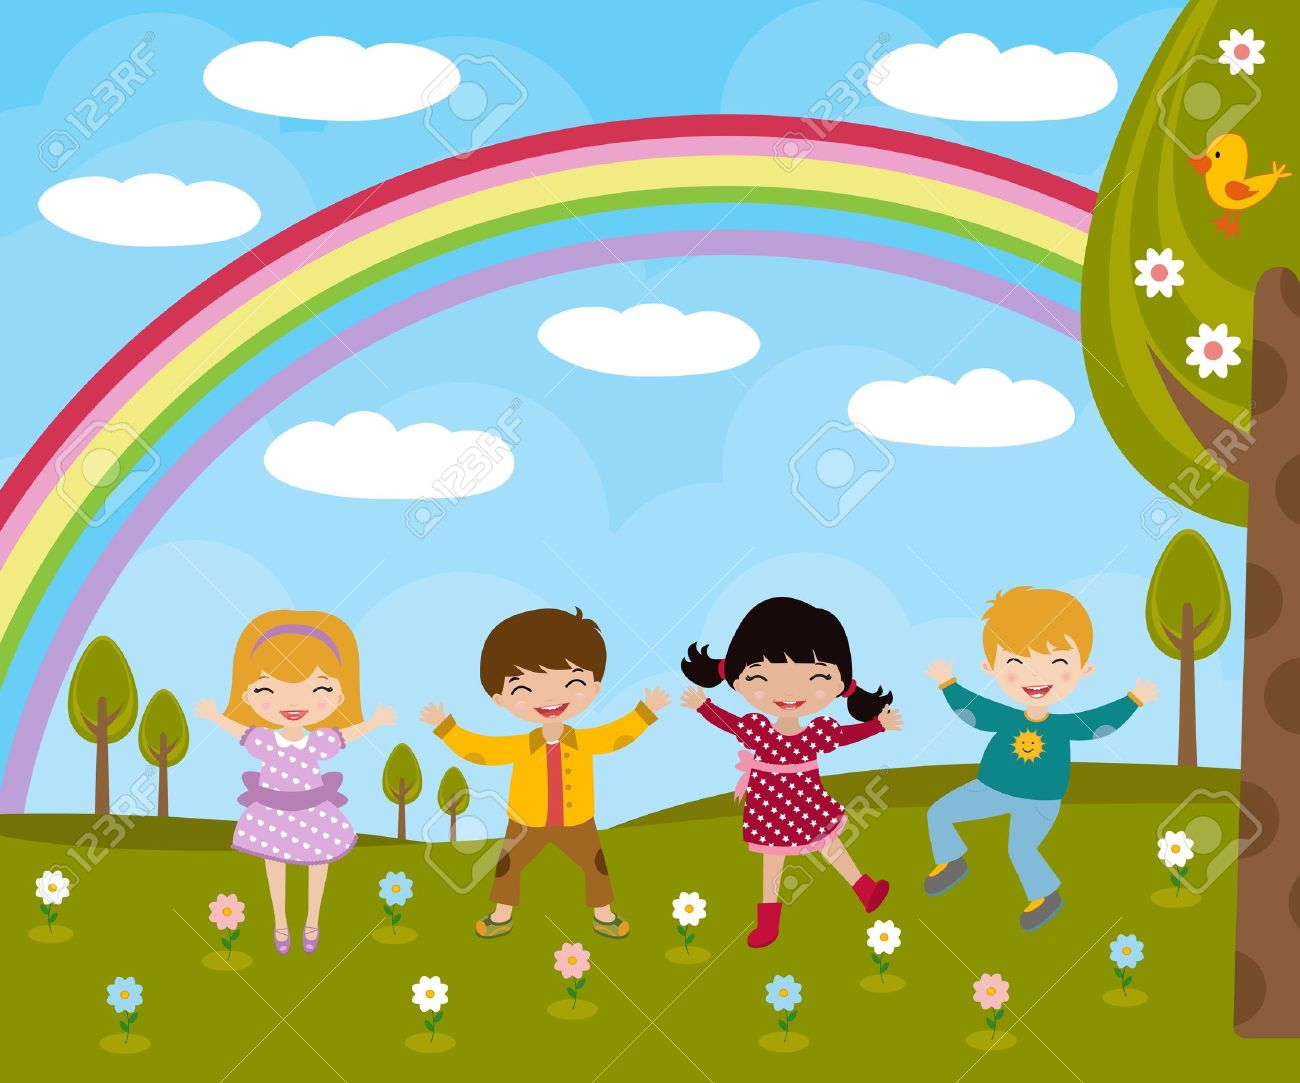 Kids In Spring Royalty Free Cliparts, Vectors, And Stock ...